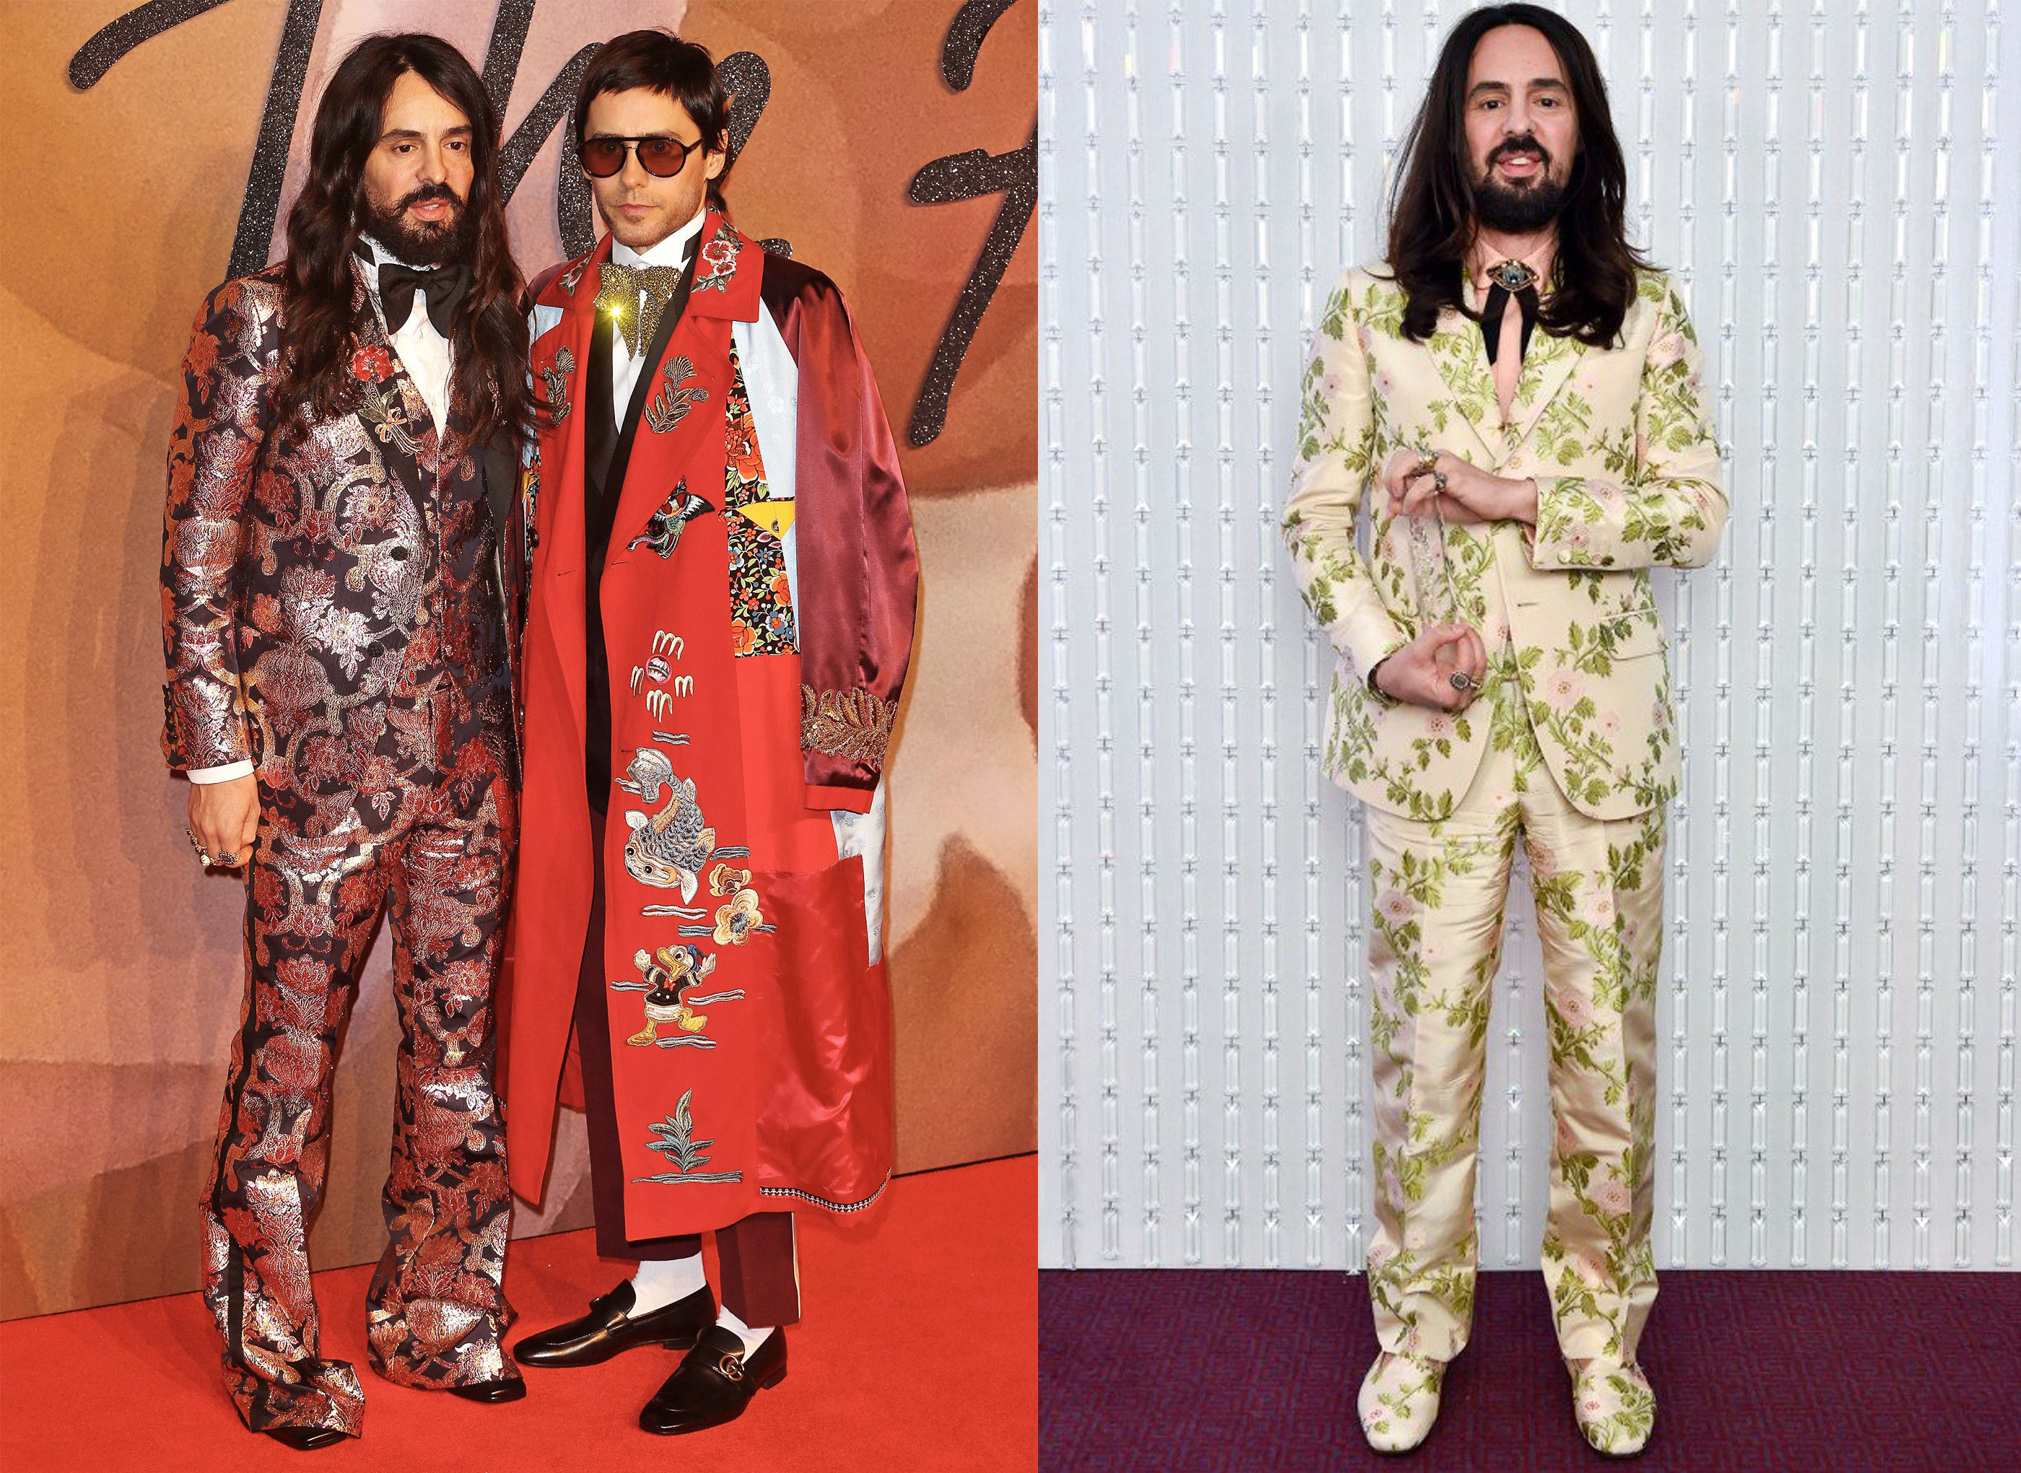 phong cach thoi trang nam - elle man - Alessandro Michele 1